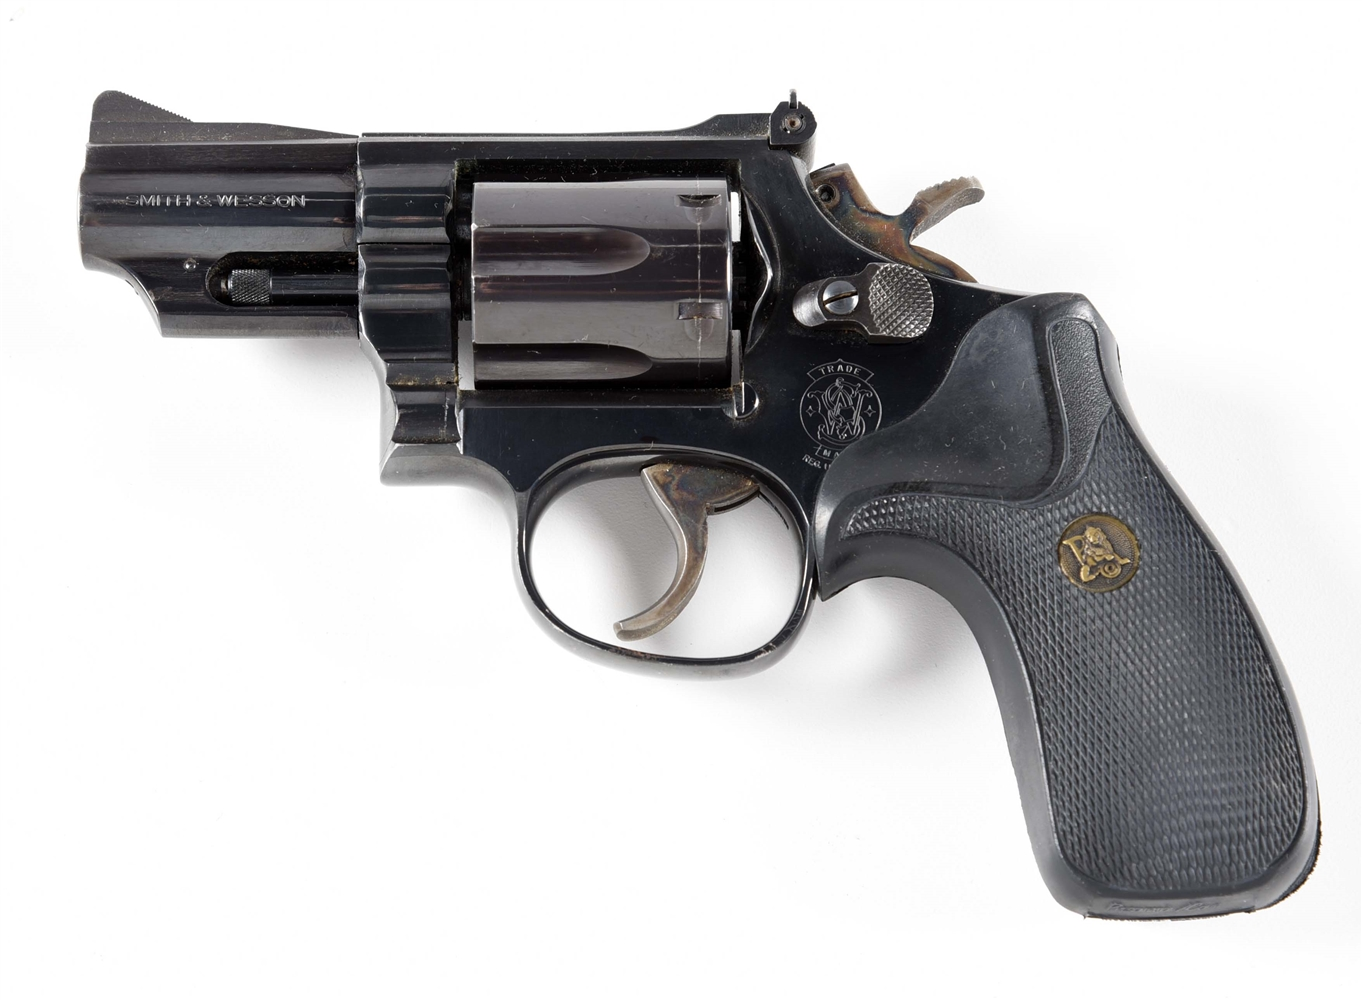 (M) SMITH & WESSON MODEL 19-5 DOUBLE ACTION .357 MAGNUM REVOLVER.